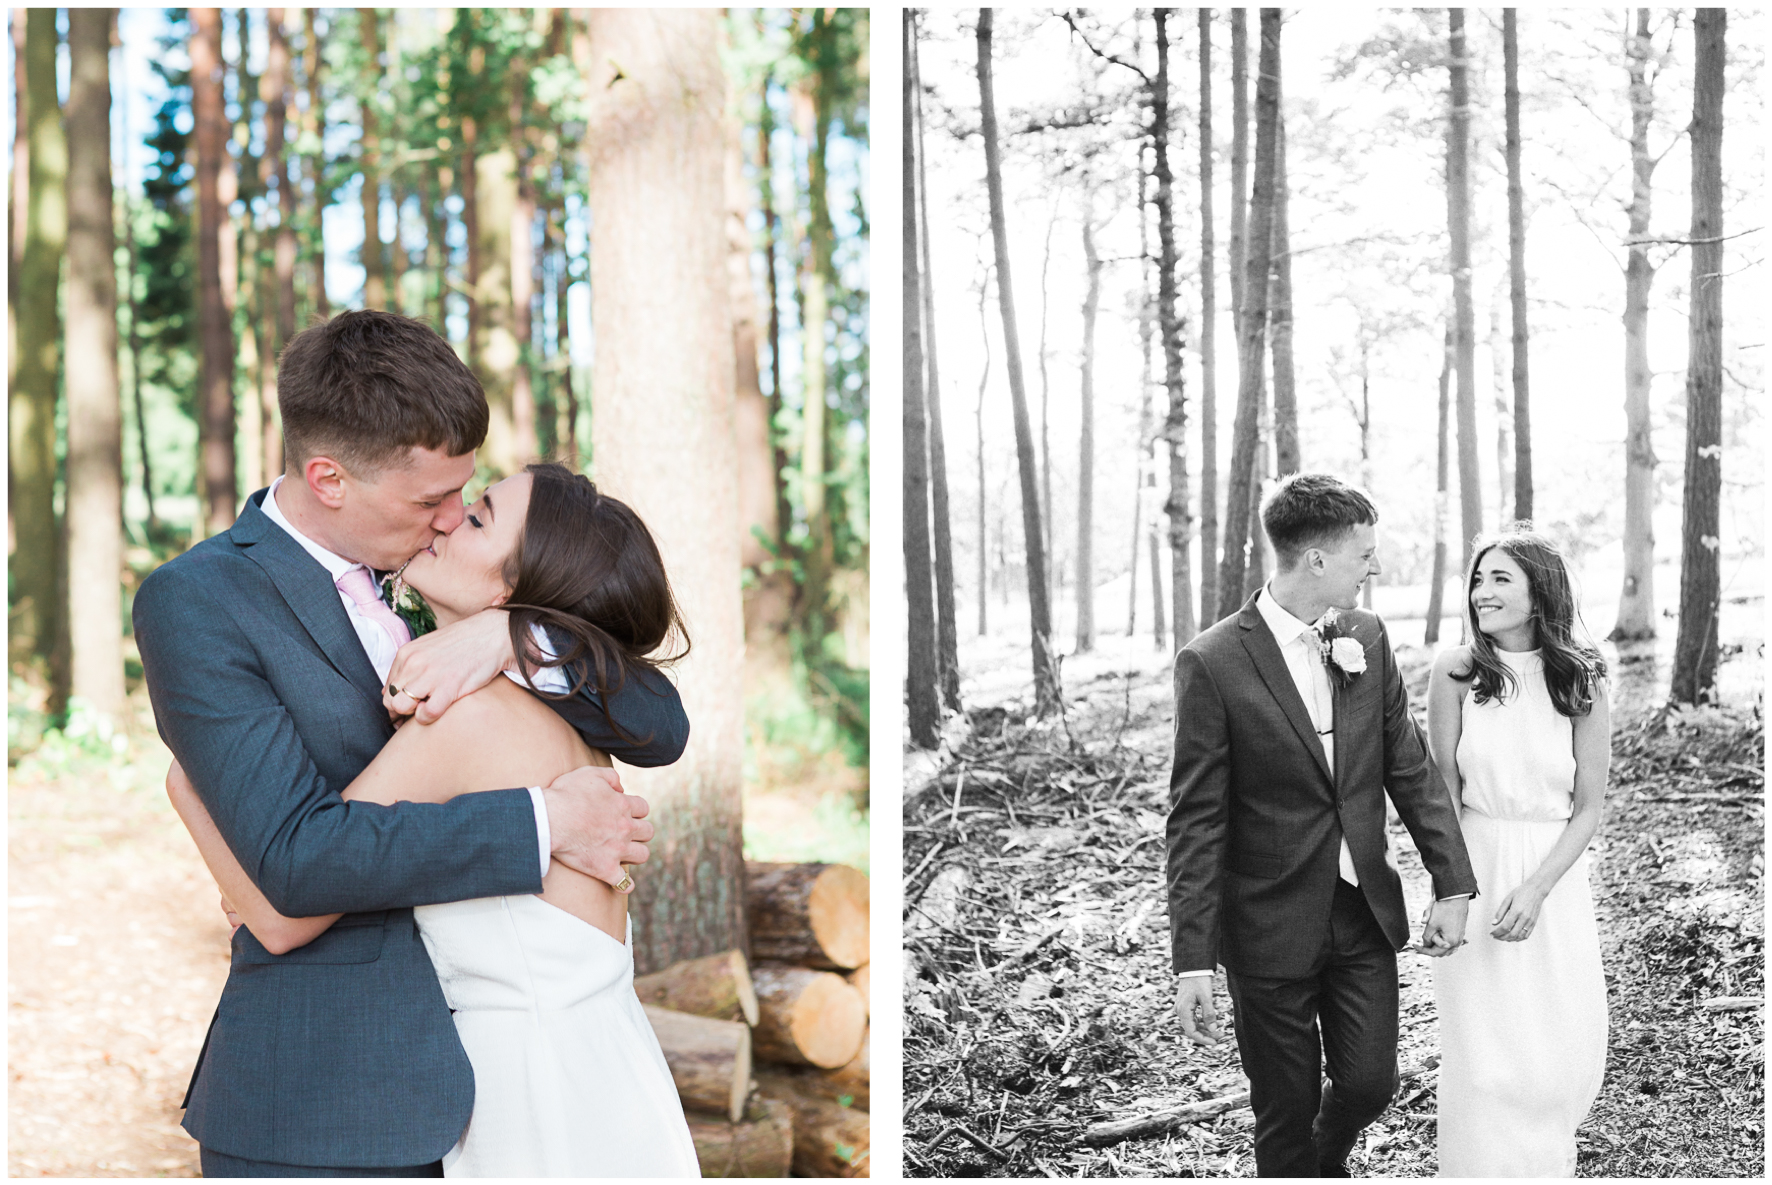 glamping wedding, Lucy Davenport Photography, home wedding, Sperry tent, PapaKata, bridal couple, bride, groom